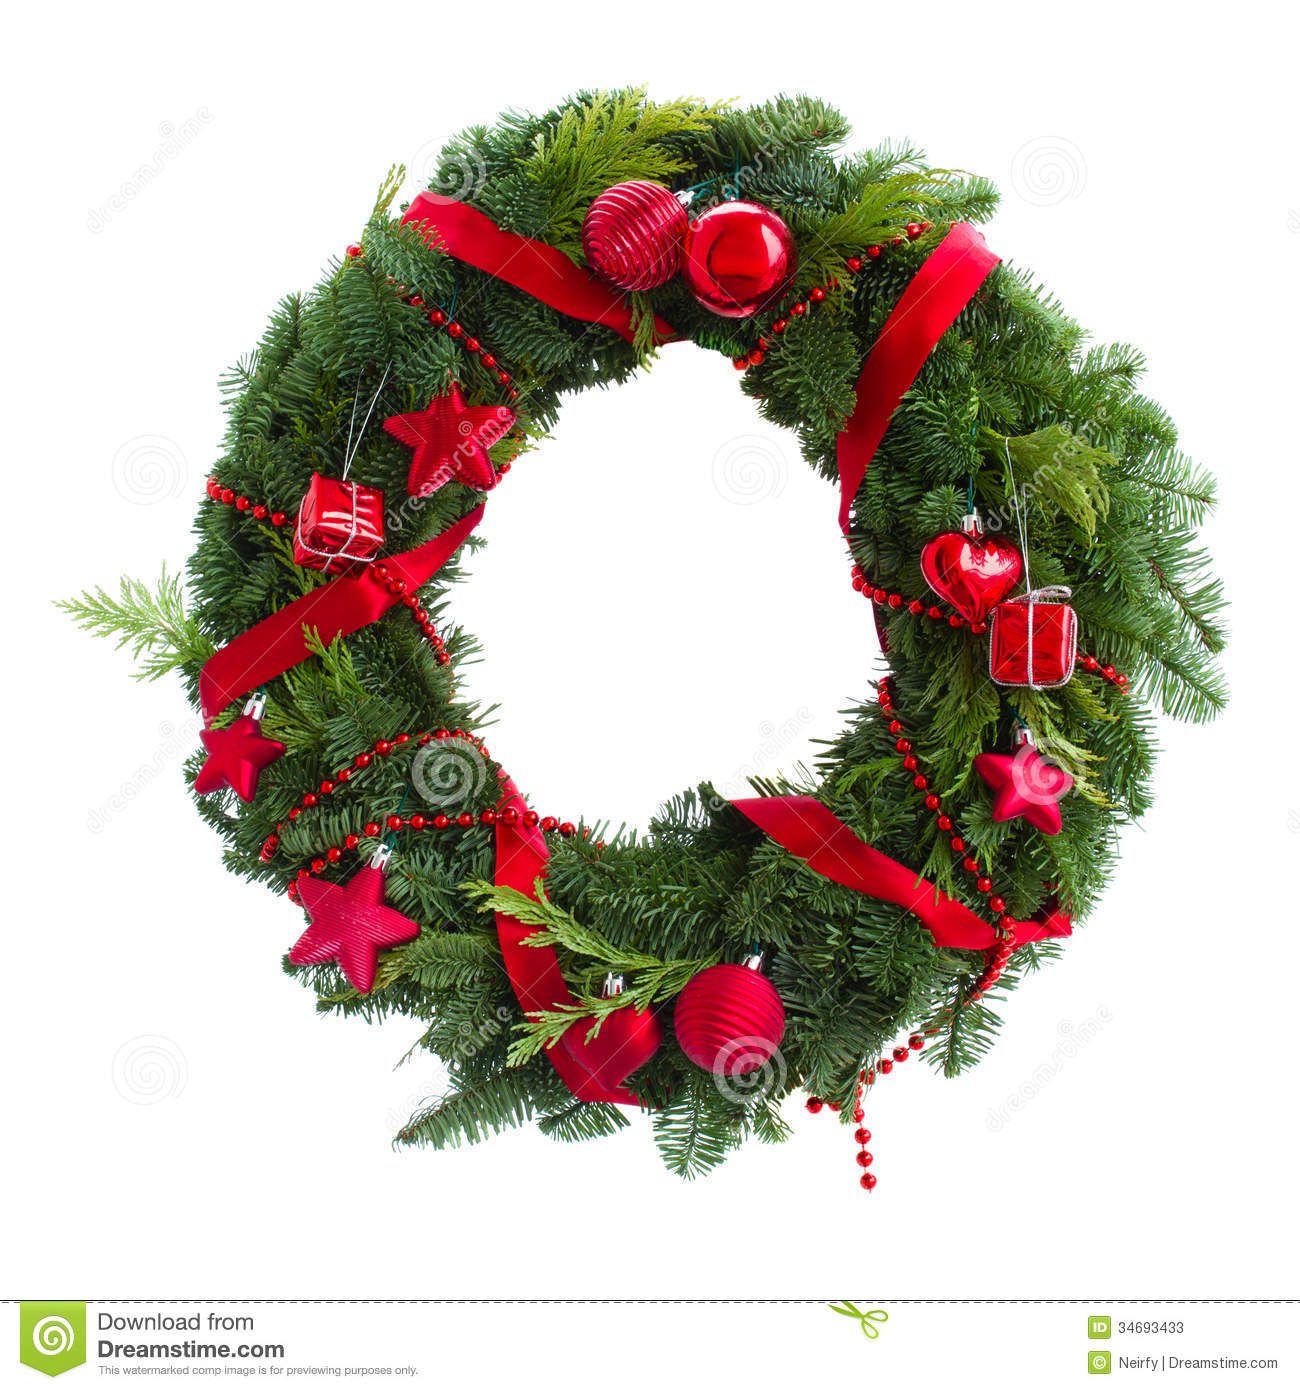 Green christmas wreath with red decorations stock photos for Red and green christmas decorations